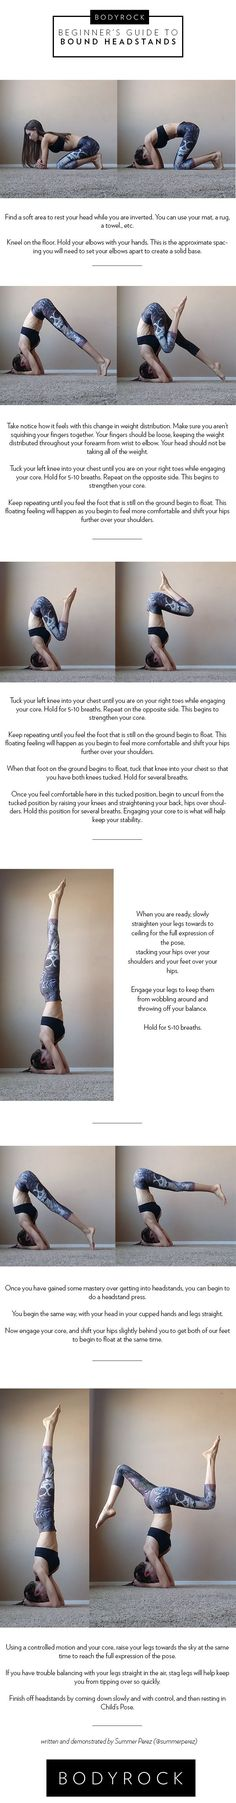 Beginner's Step by Step Guide to Headstands #yoga